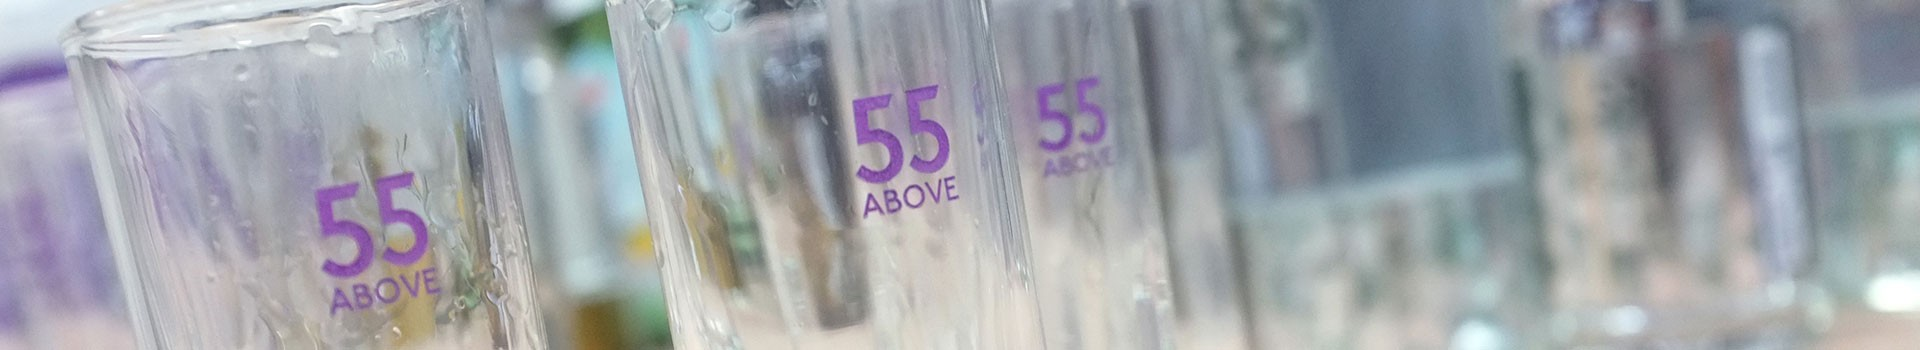 55 above vodka